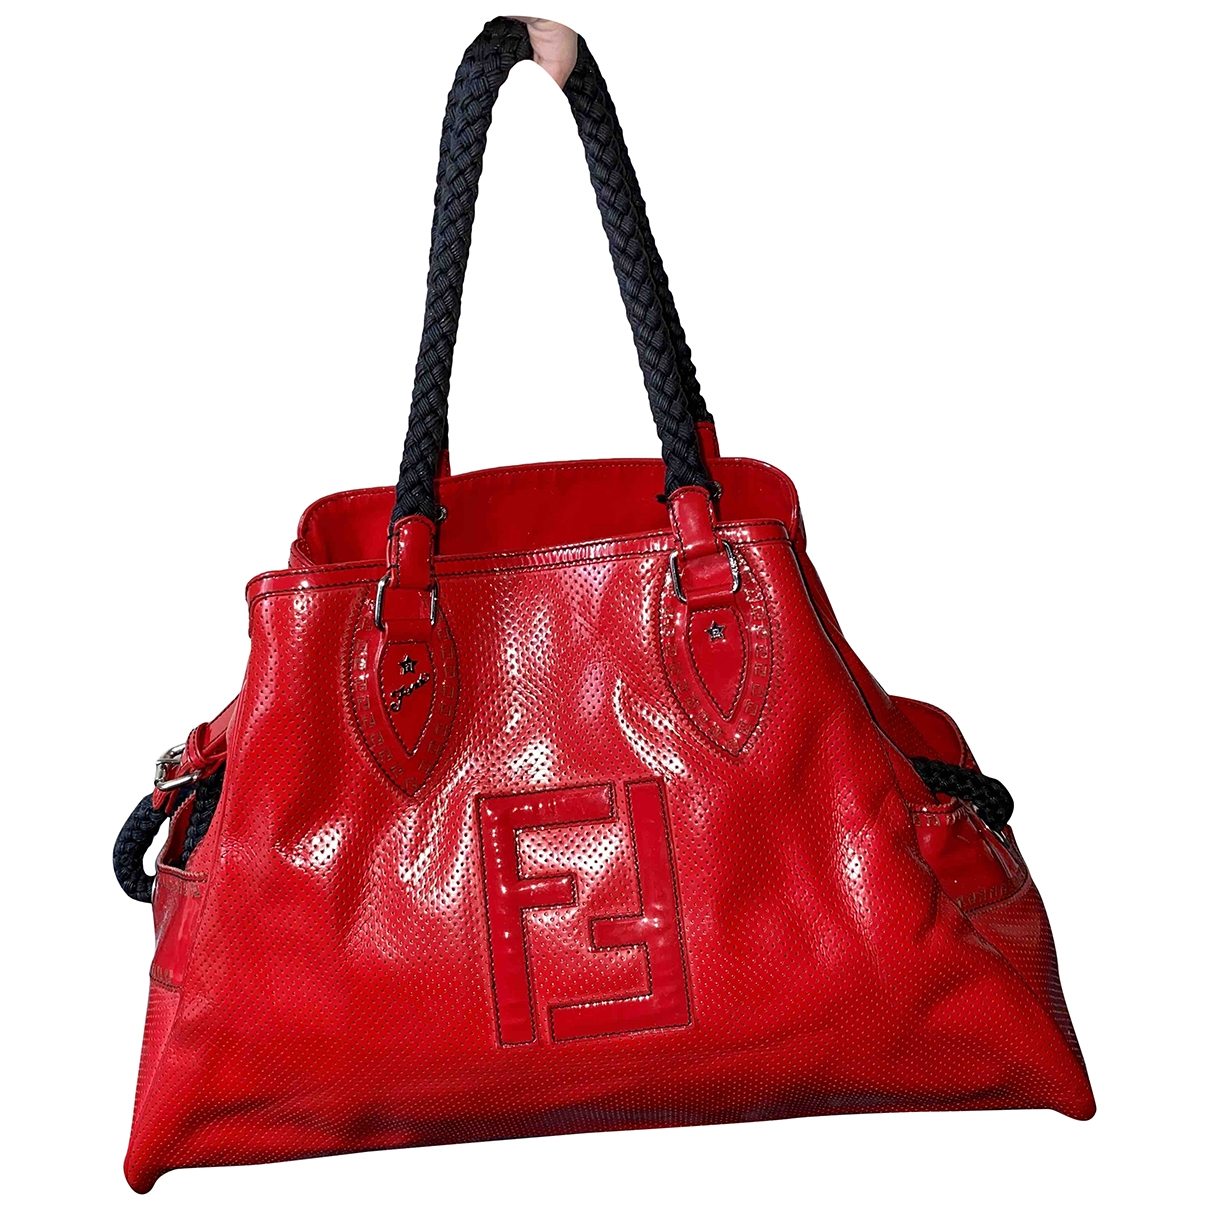 Fendi \N Red Patent leather handbag for Women \N